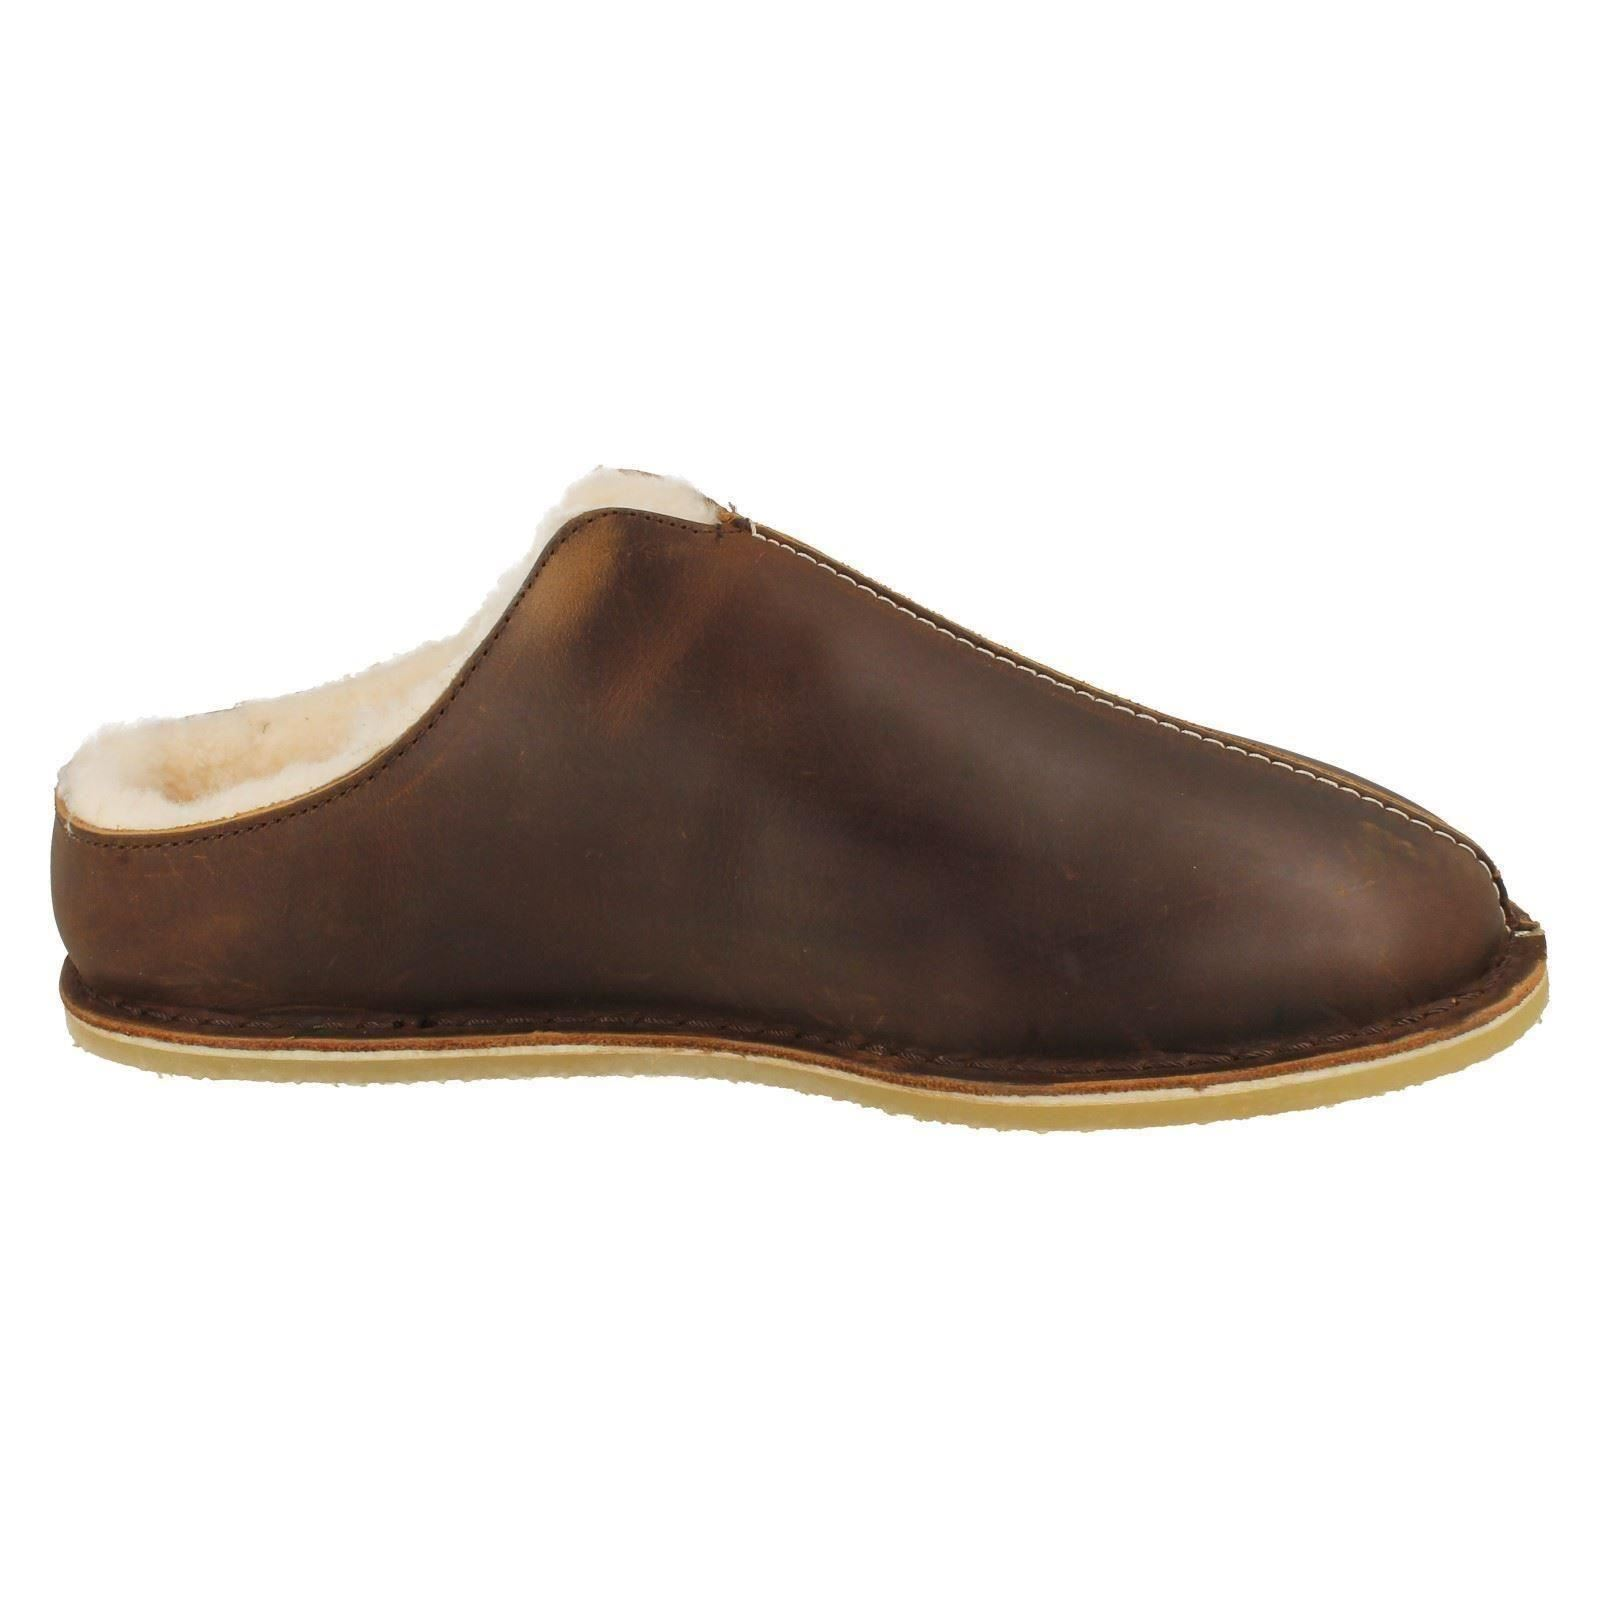 Men's Clarks Casual Slip On Slippers Label - Kite Stitch